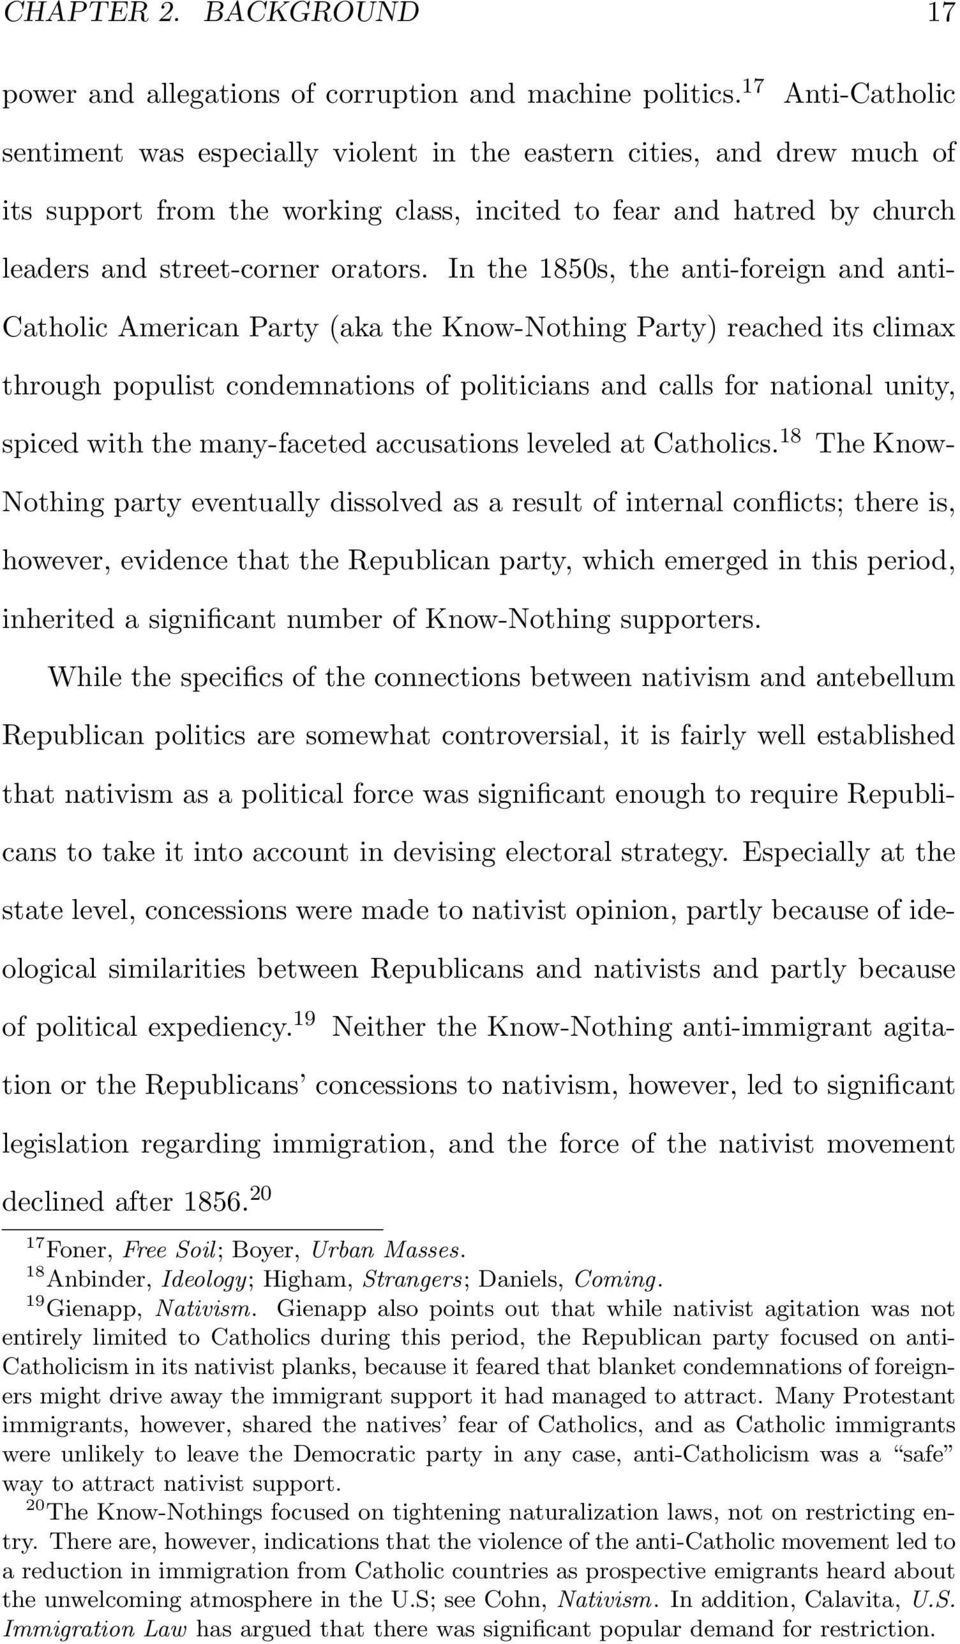 In the 1850s, the anti-foreign and anti- Catholic American Party (aka the Know-Nothing Party) reached its climax through populist condemnations of politicians and calls for national unity, spiced